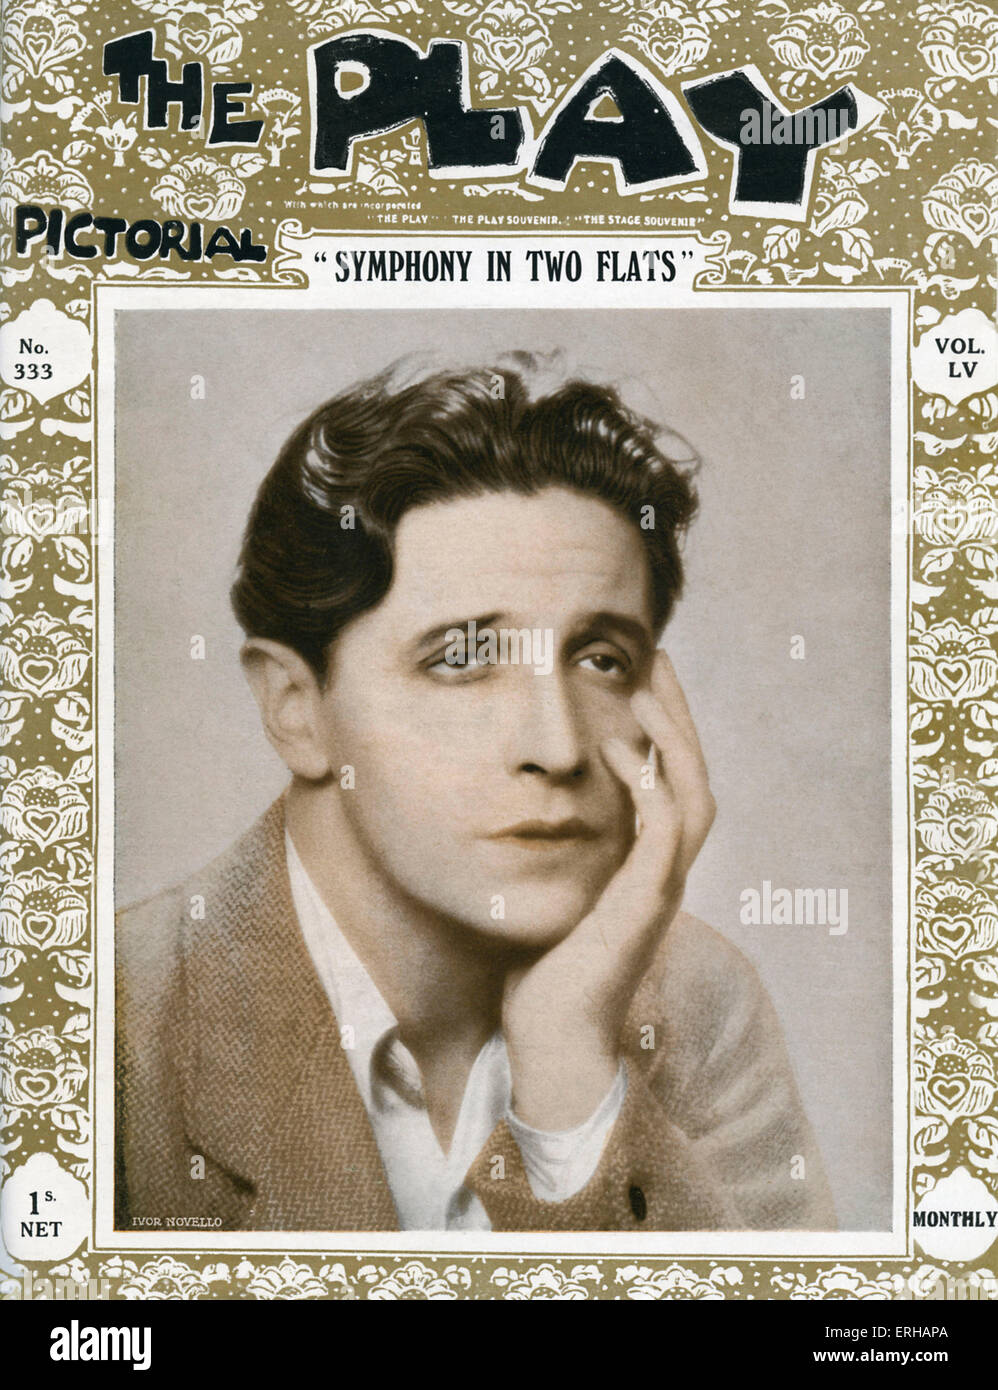 Symphony in Two Flats by Ivor Novello, depicted, 1929.The Play, vol. 55, no. 333, Welsh singer, composer, actor - Stock Image